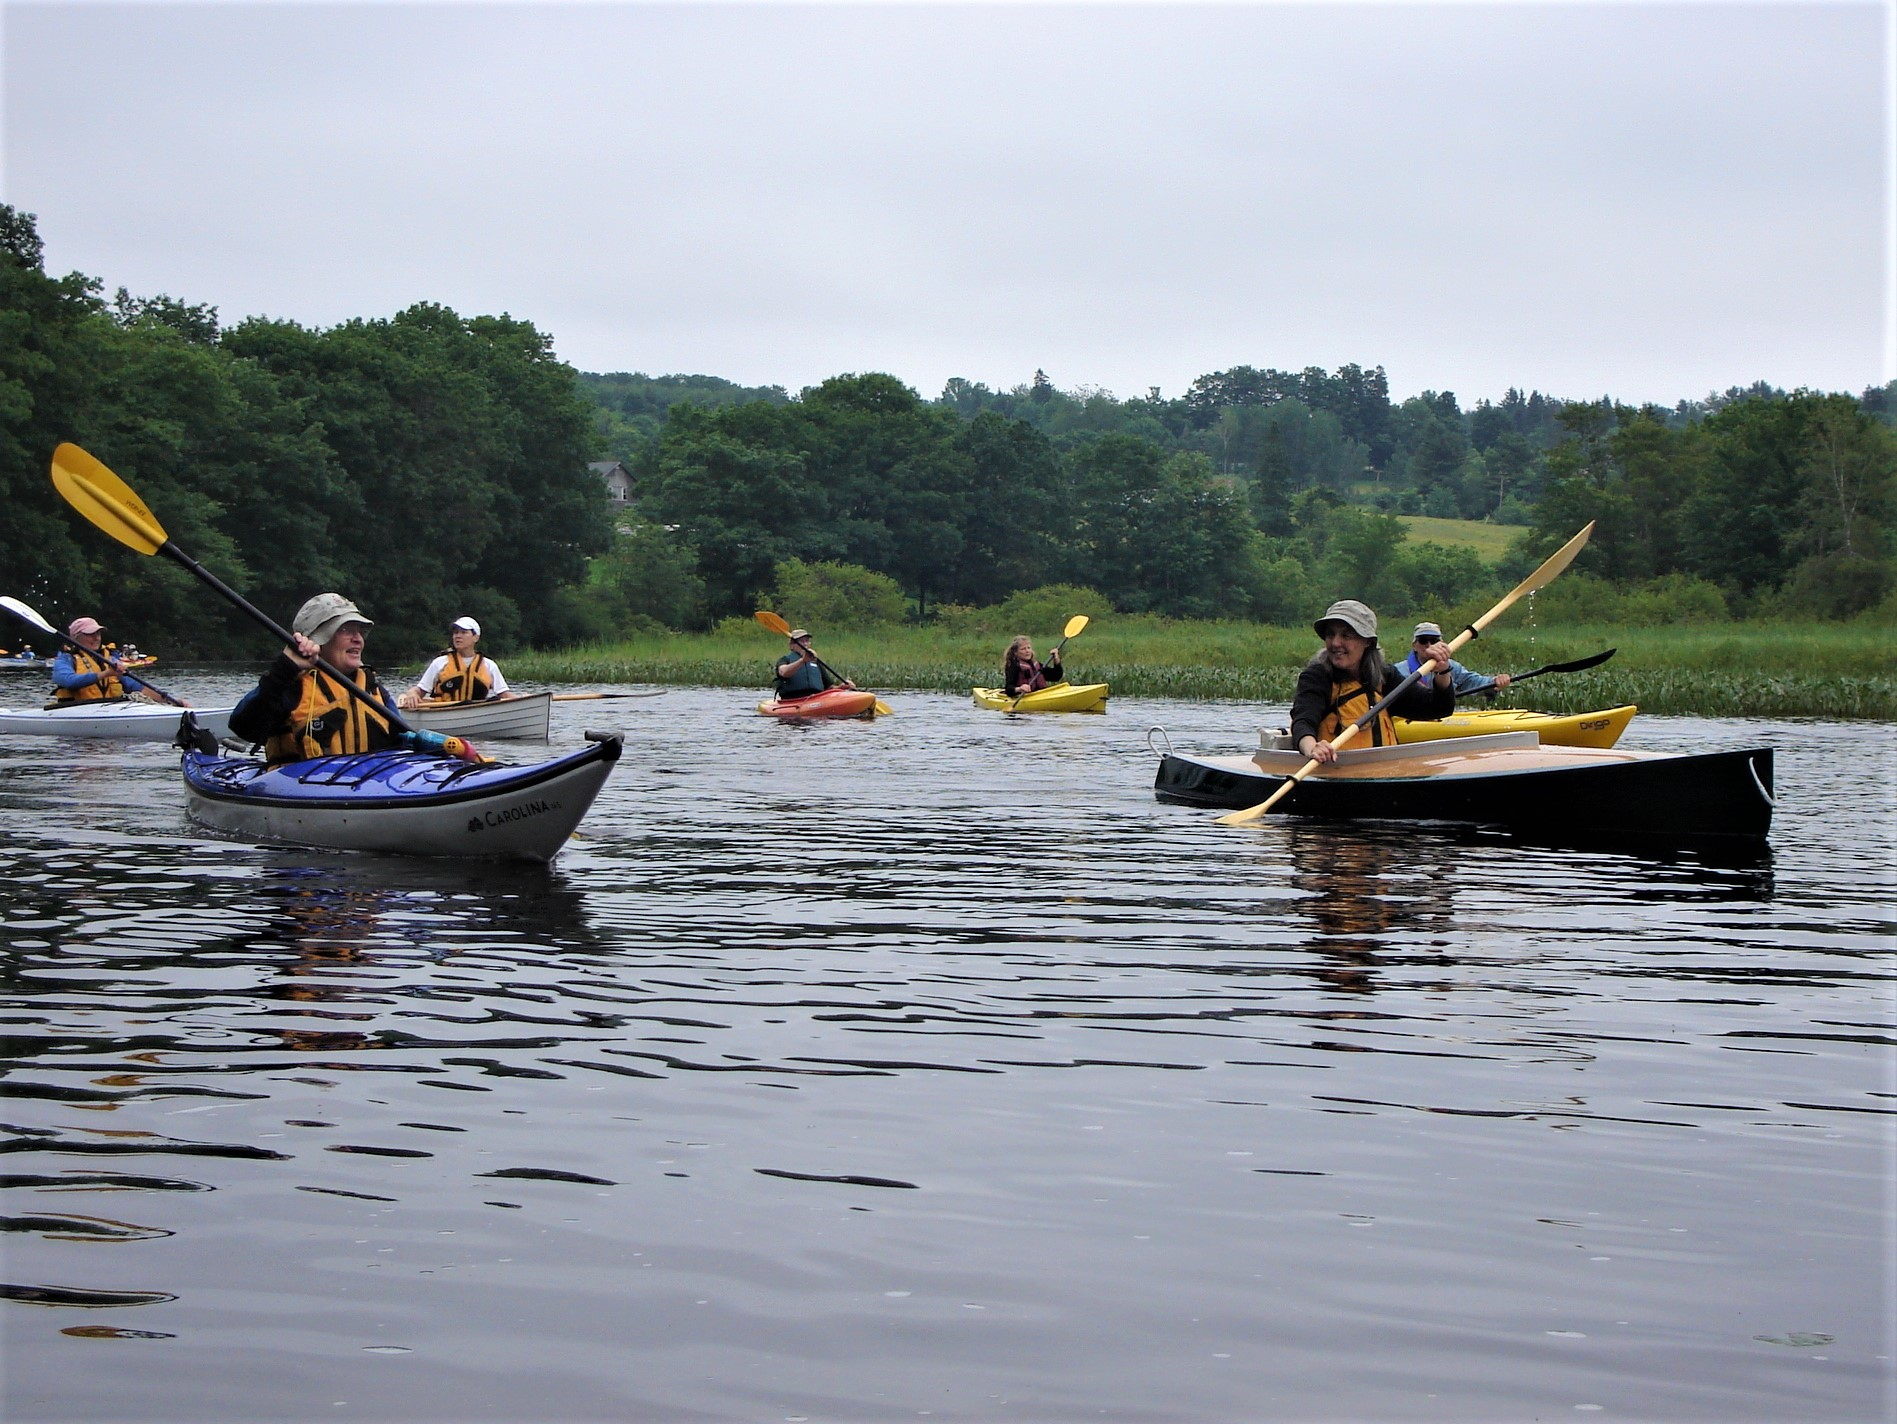 Join the Alewife Run—Paddle to Orland River Day June 30